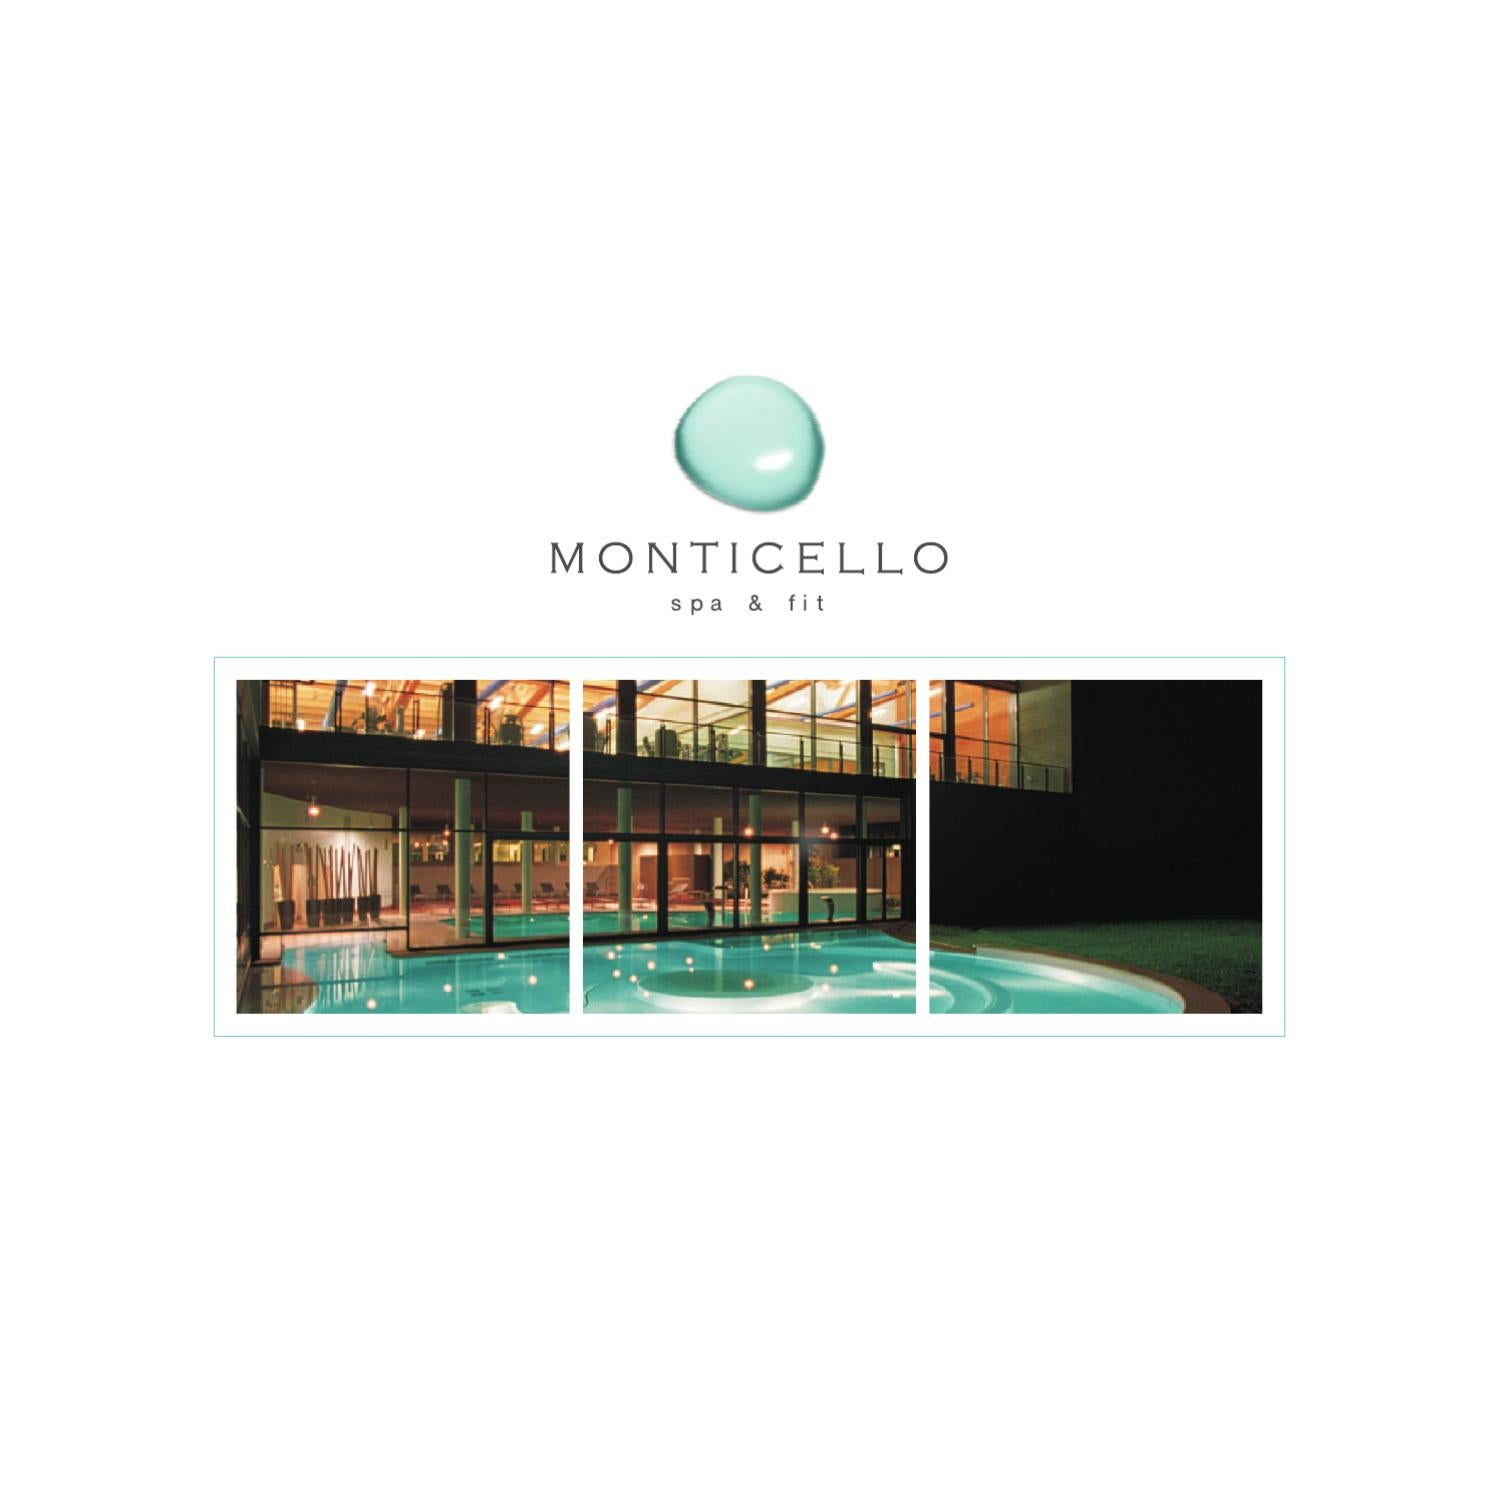 Lc Spa Brochure Monticello Spa By Monticello Spa Issuu